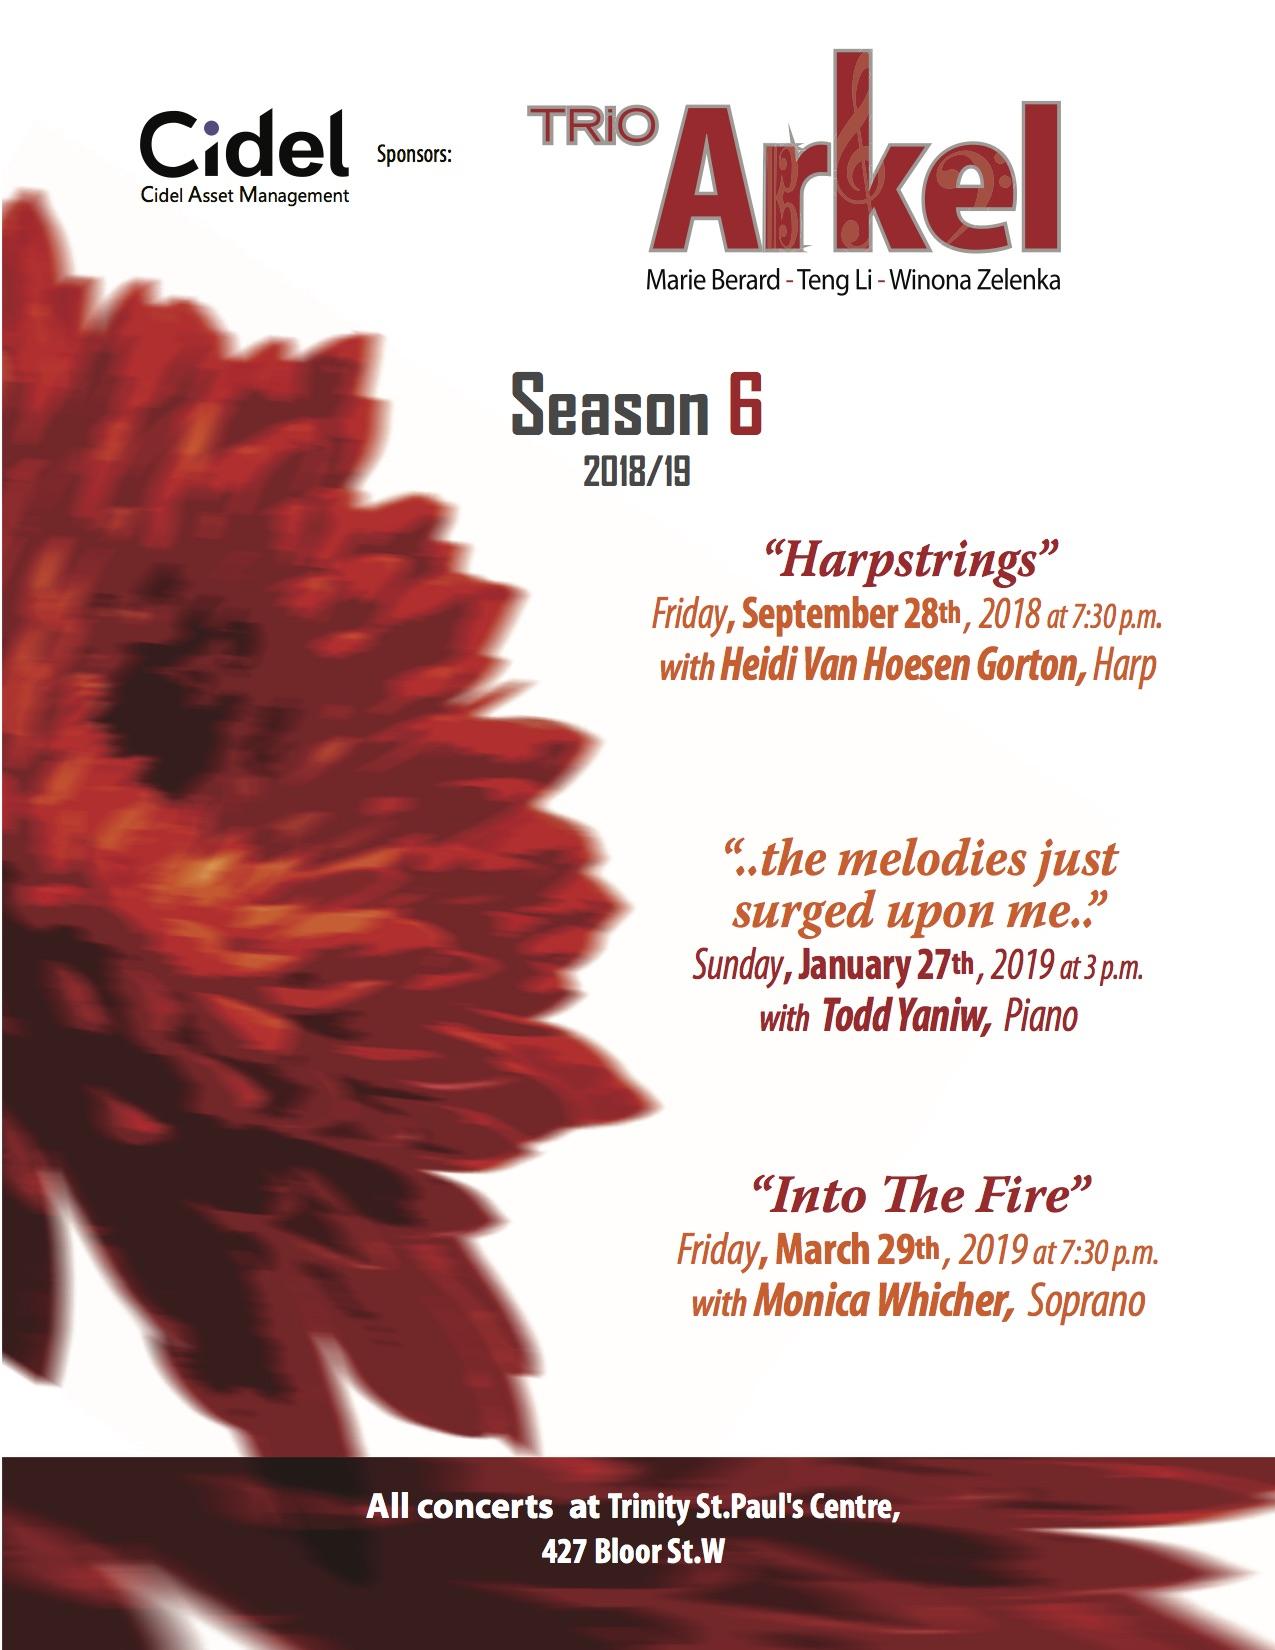 Trio Arkel season 6